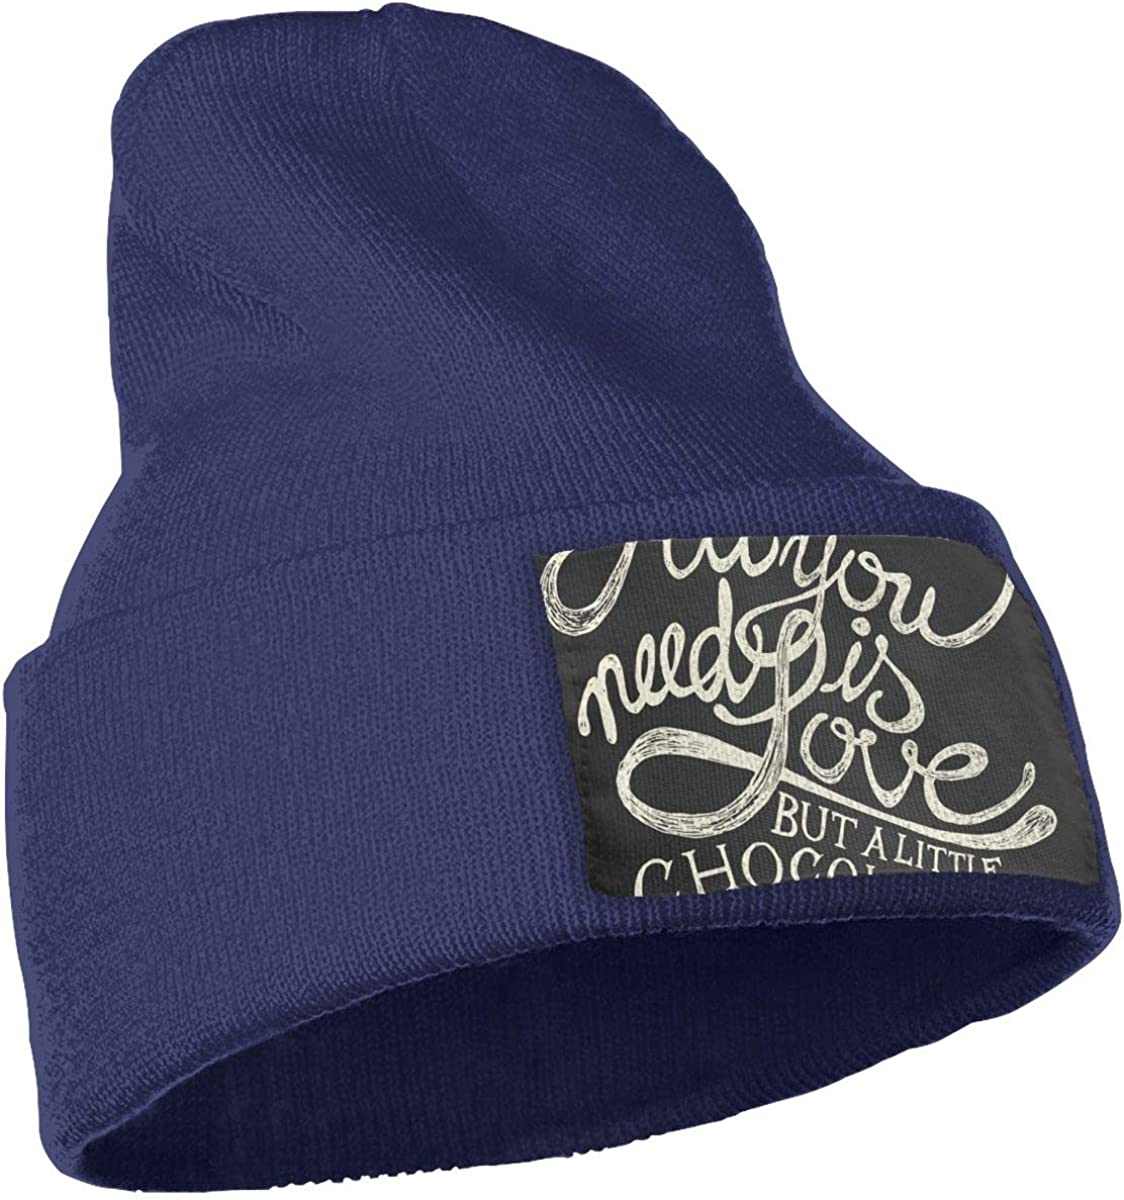 All You Need is Love Unisex Fashion Knitted Hat Luxury Hip-Hop Cap